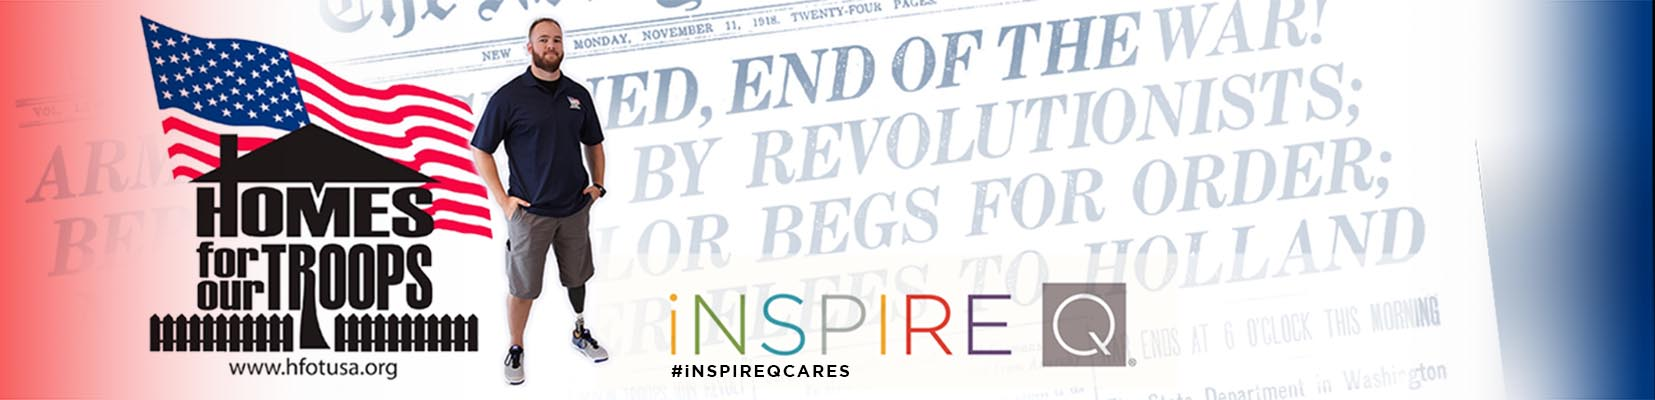 Image shows the logo of Home For Our Troops, Sgt. Shumaker, the American flag, a New York Times article from 1918, and the #iNSPIREQCARES.